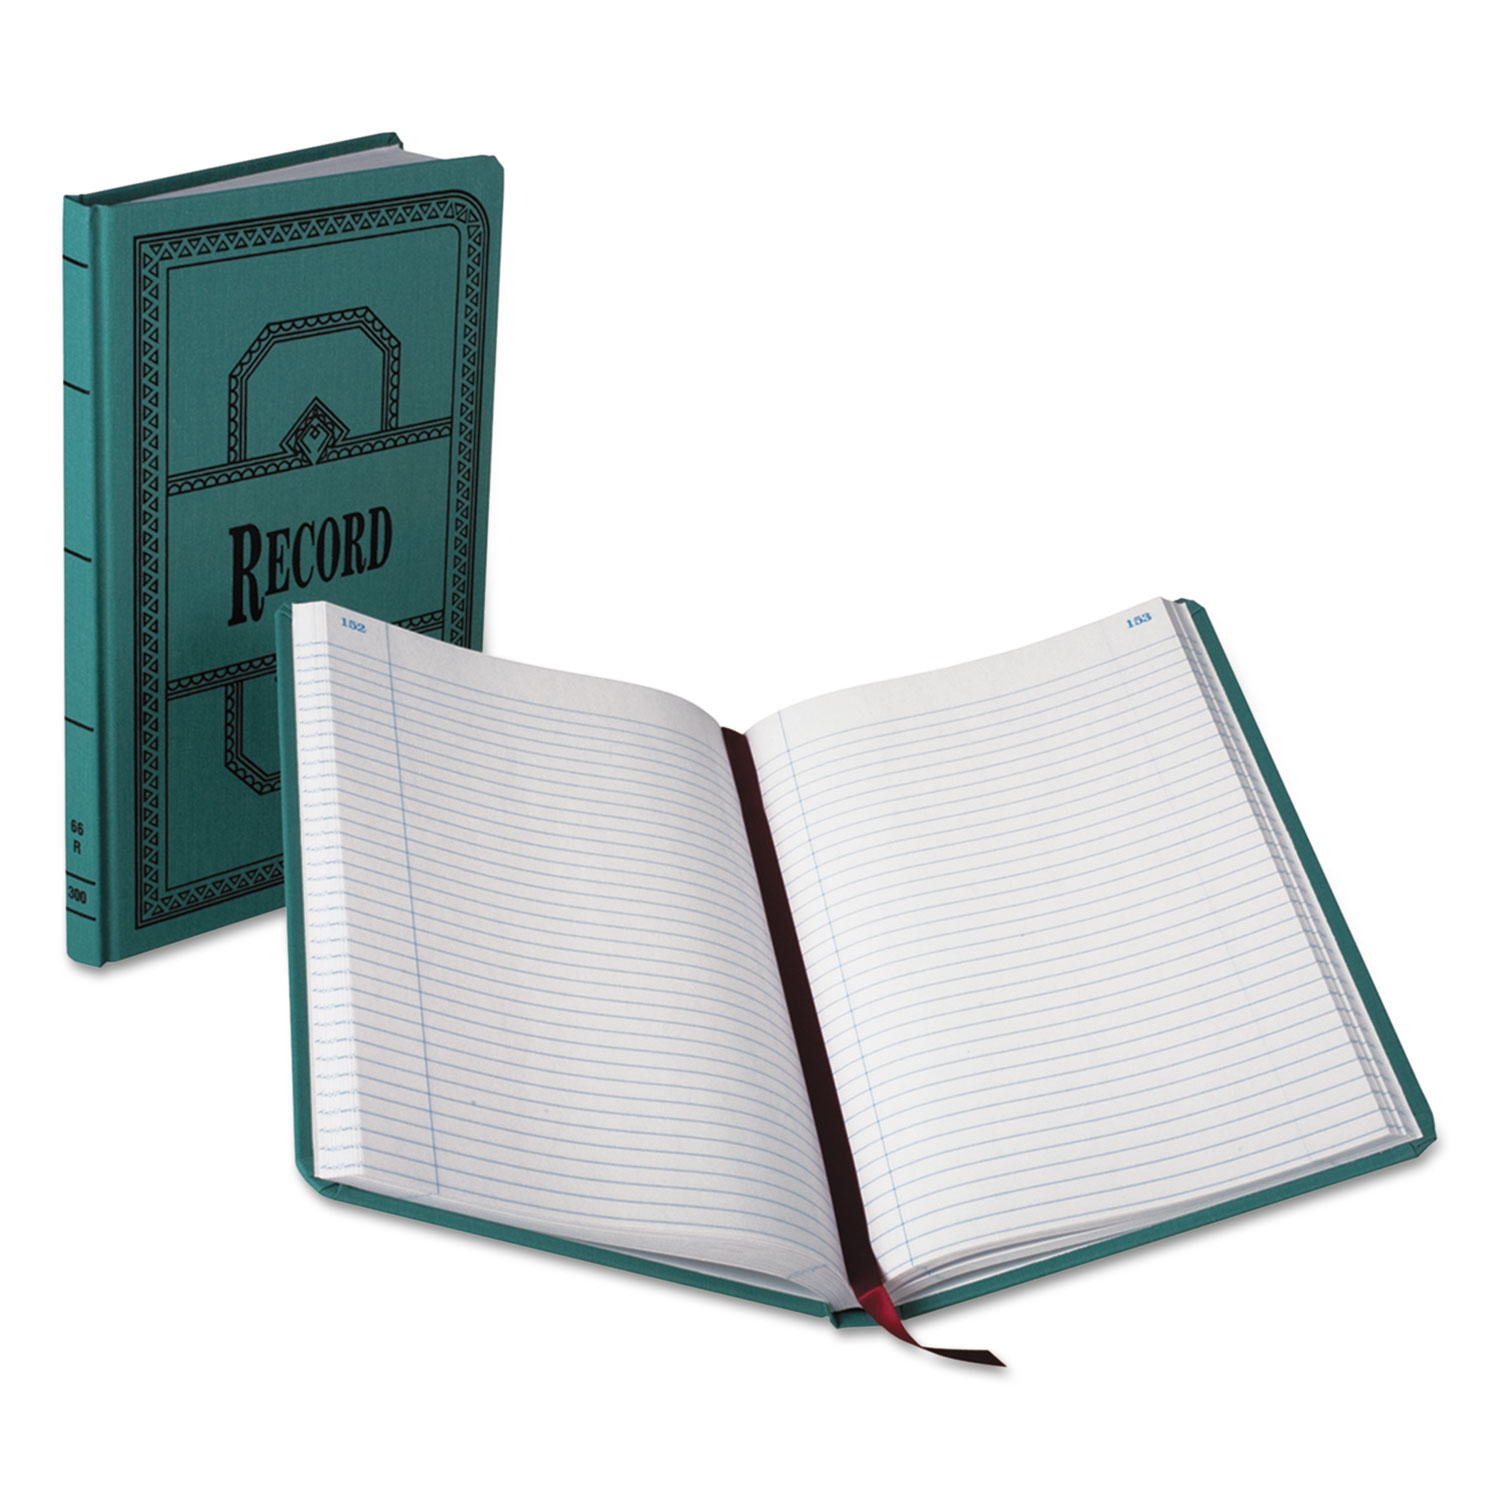 Record/Account Book, Record Rule, Blue, 300 Pages, 12 1/8 x 7 5/8